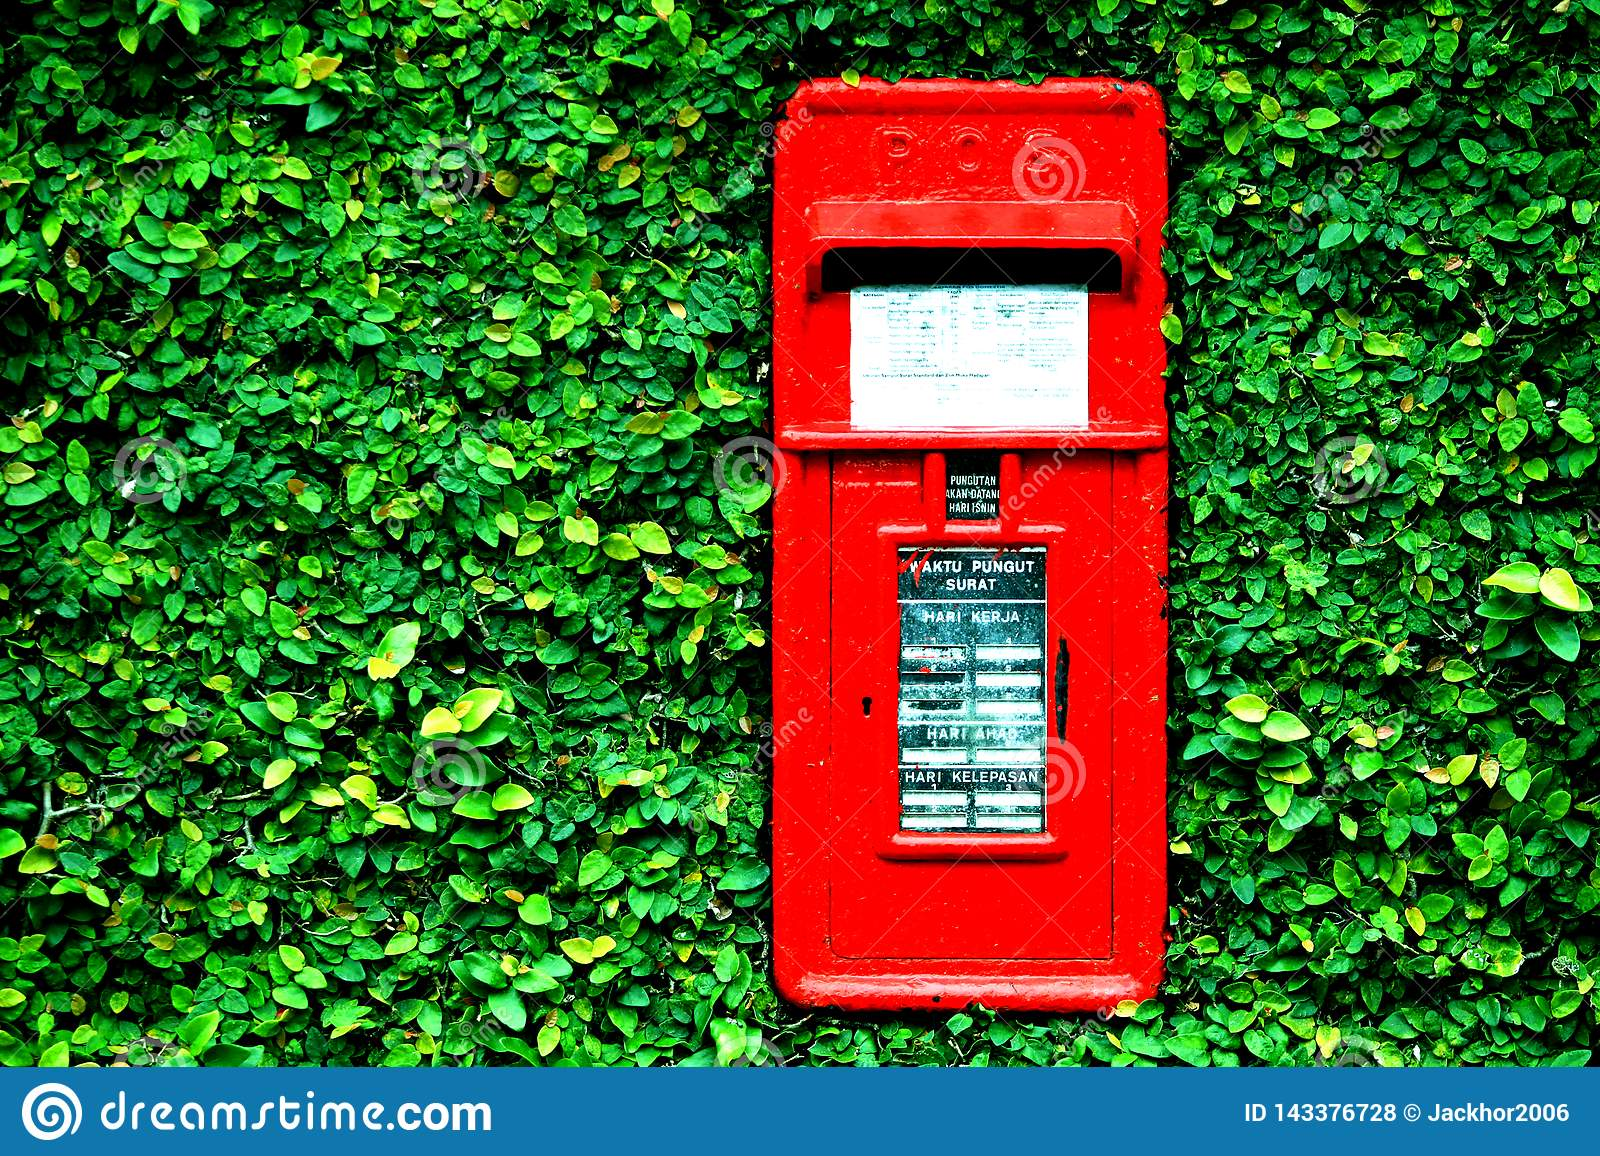 The mailbox at the green gate